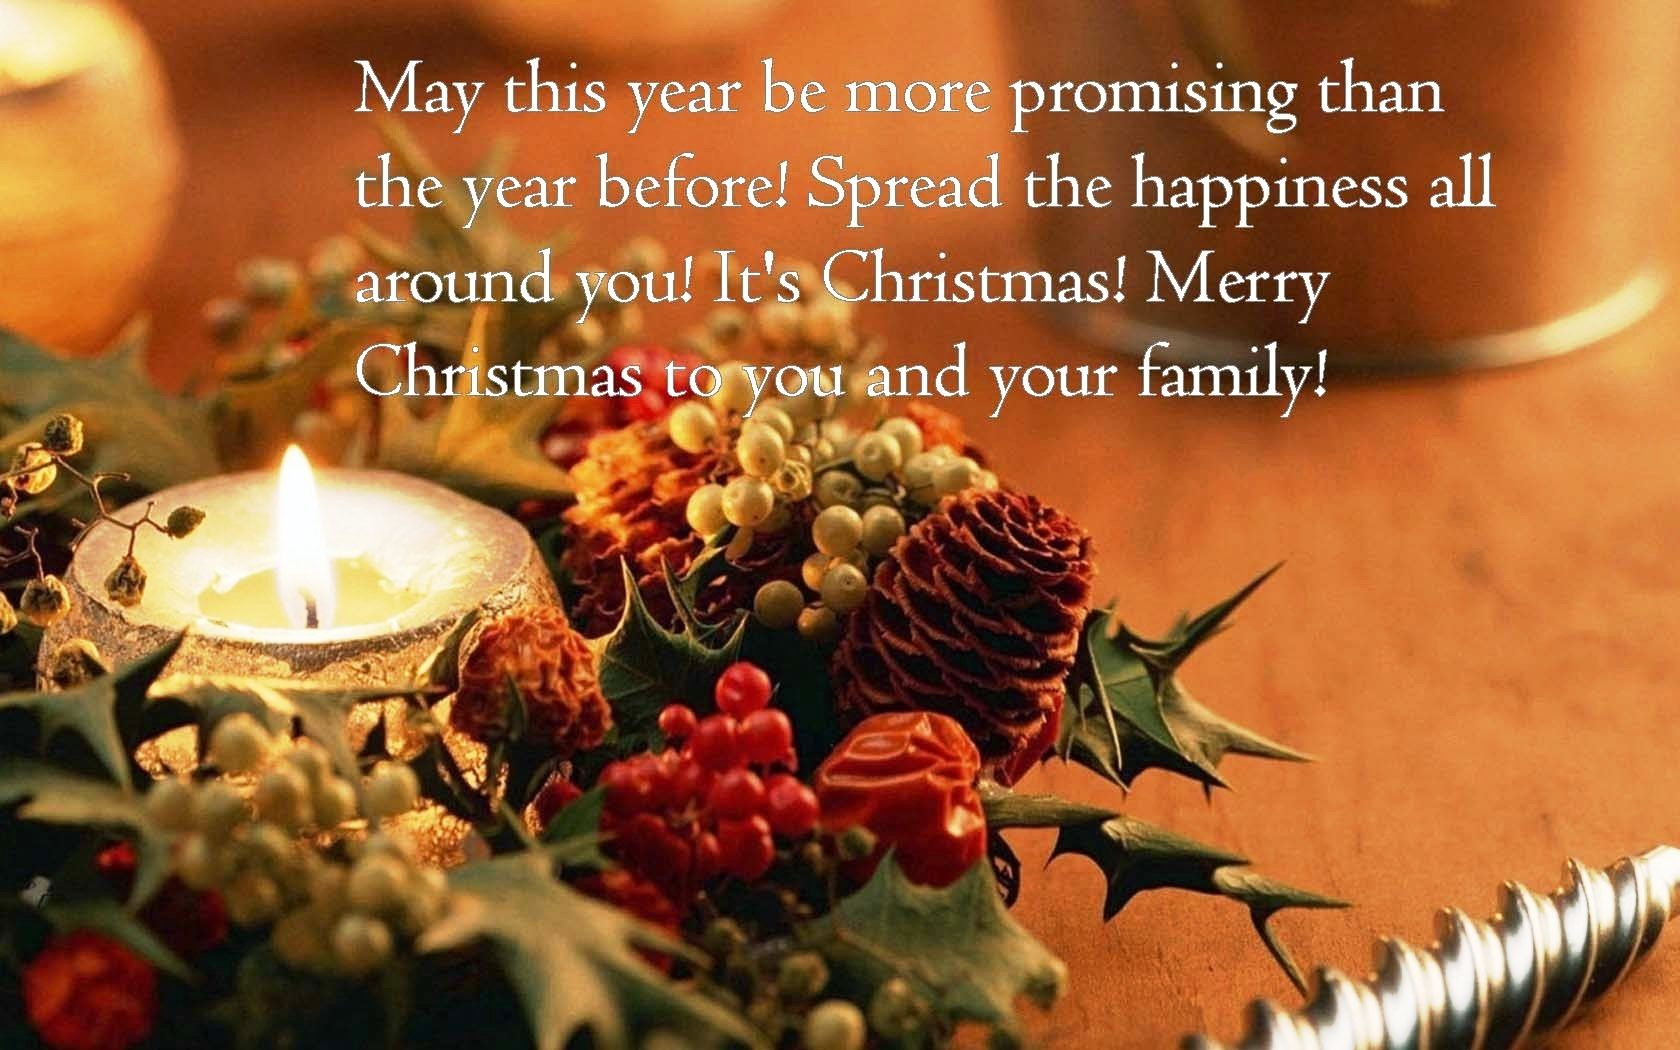 Merry Christmas To You And Your Family Christmas Merry Christmas Christmas Ornament Merry Christmas Wishes Quotes Merry Christmas Status Merry Christmas Quotes